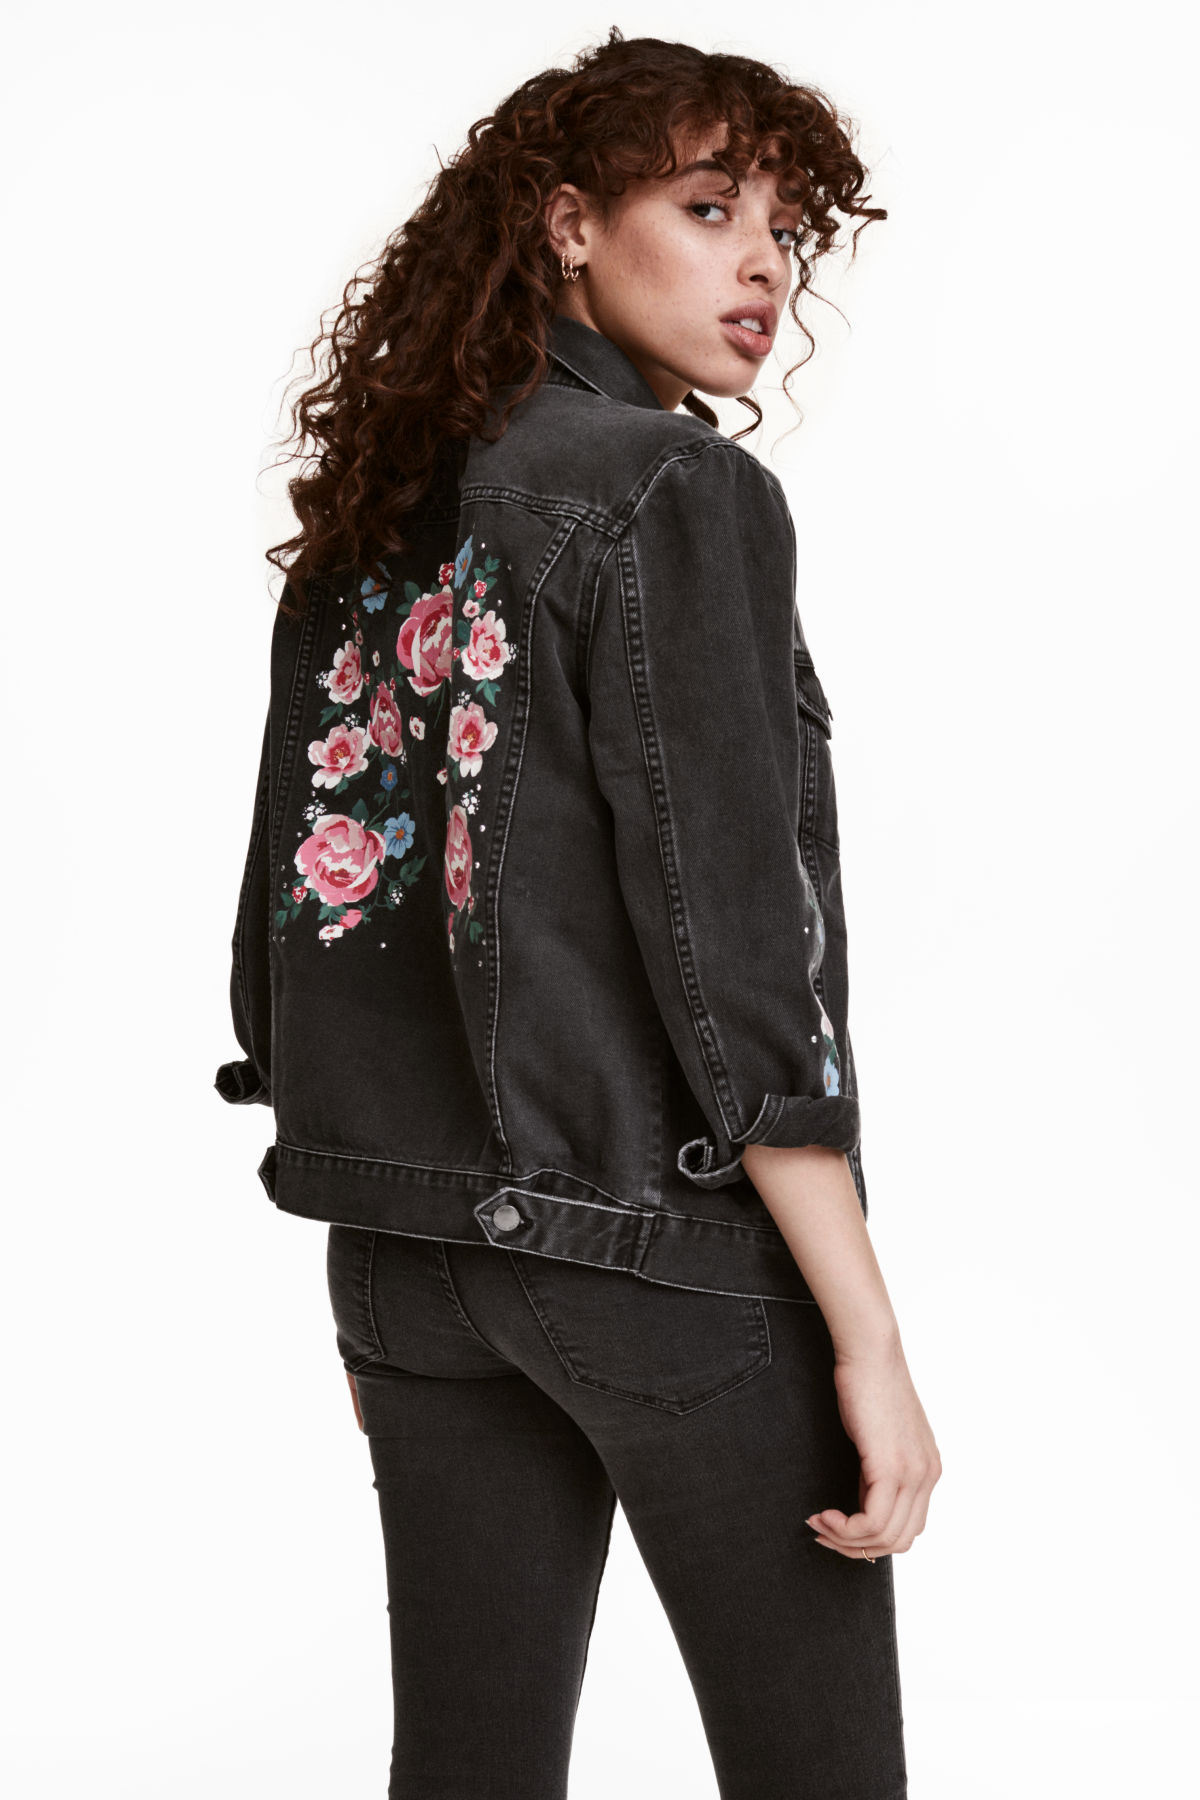 7 Stylish Denim Jackets to Wear With Any Outfit